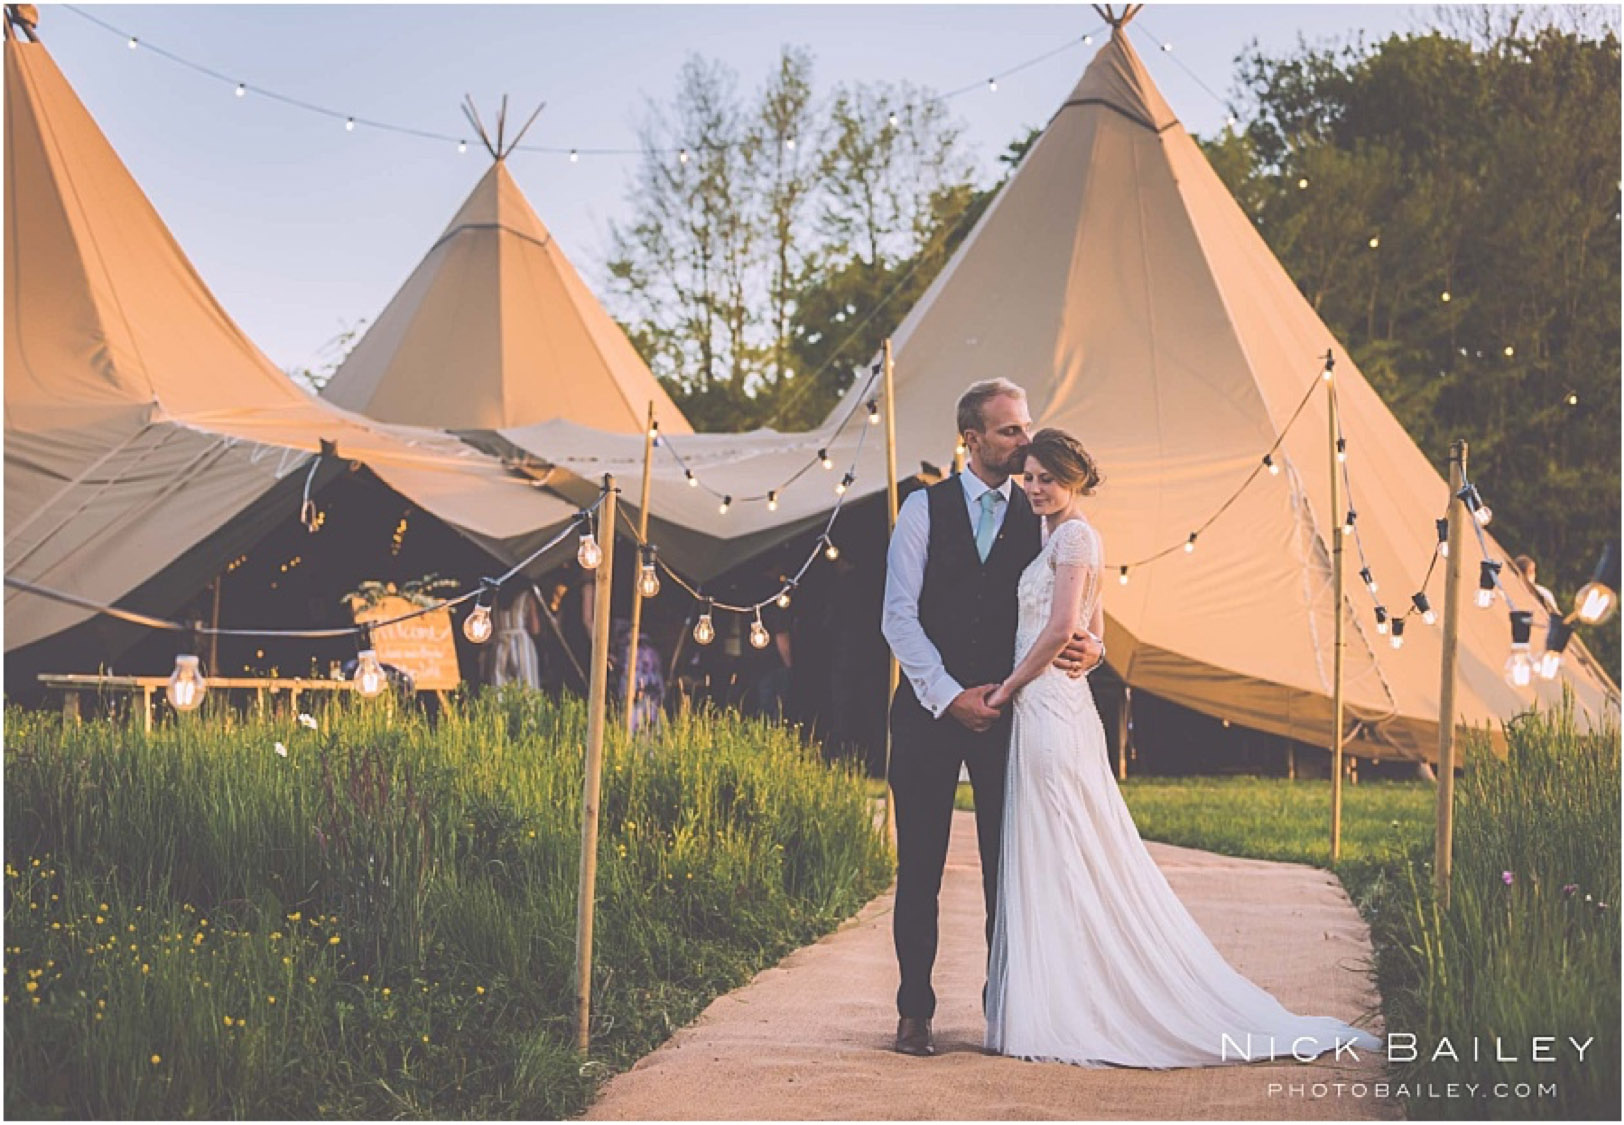 Tipi and Walkway